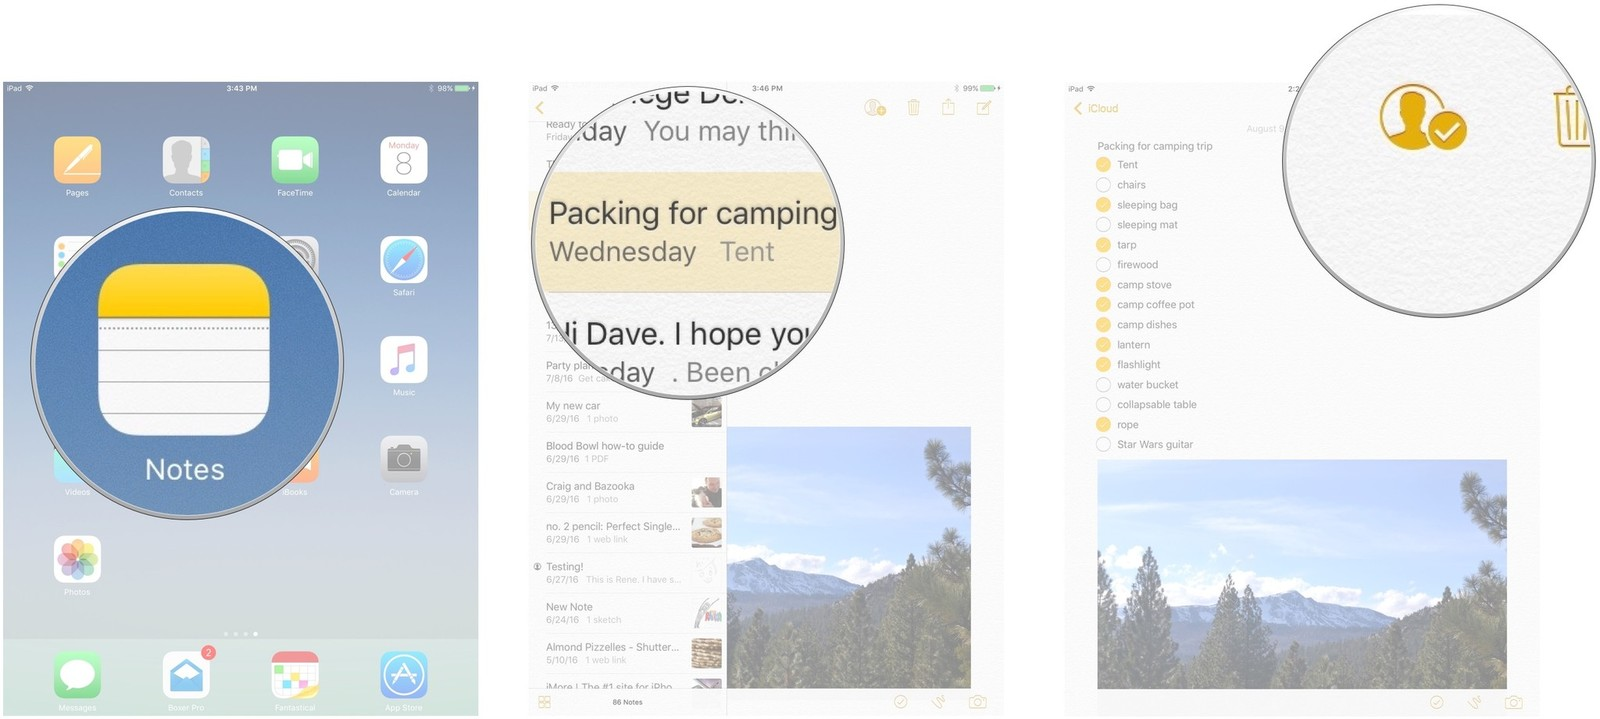 How to collaborate with others in the notes app on iphone and ipad removing access in the notes app buycottarizona Gallery